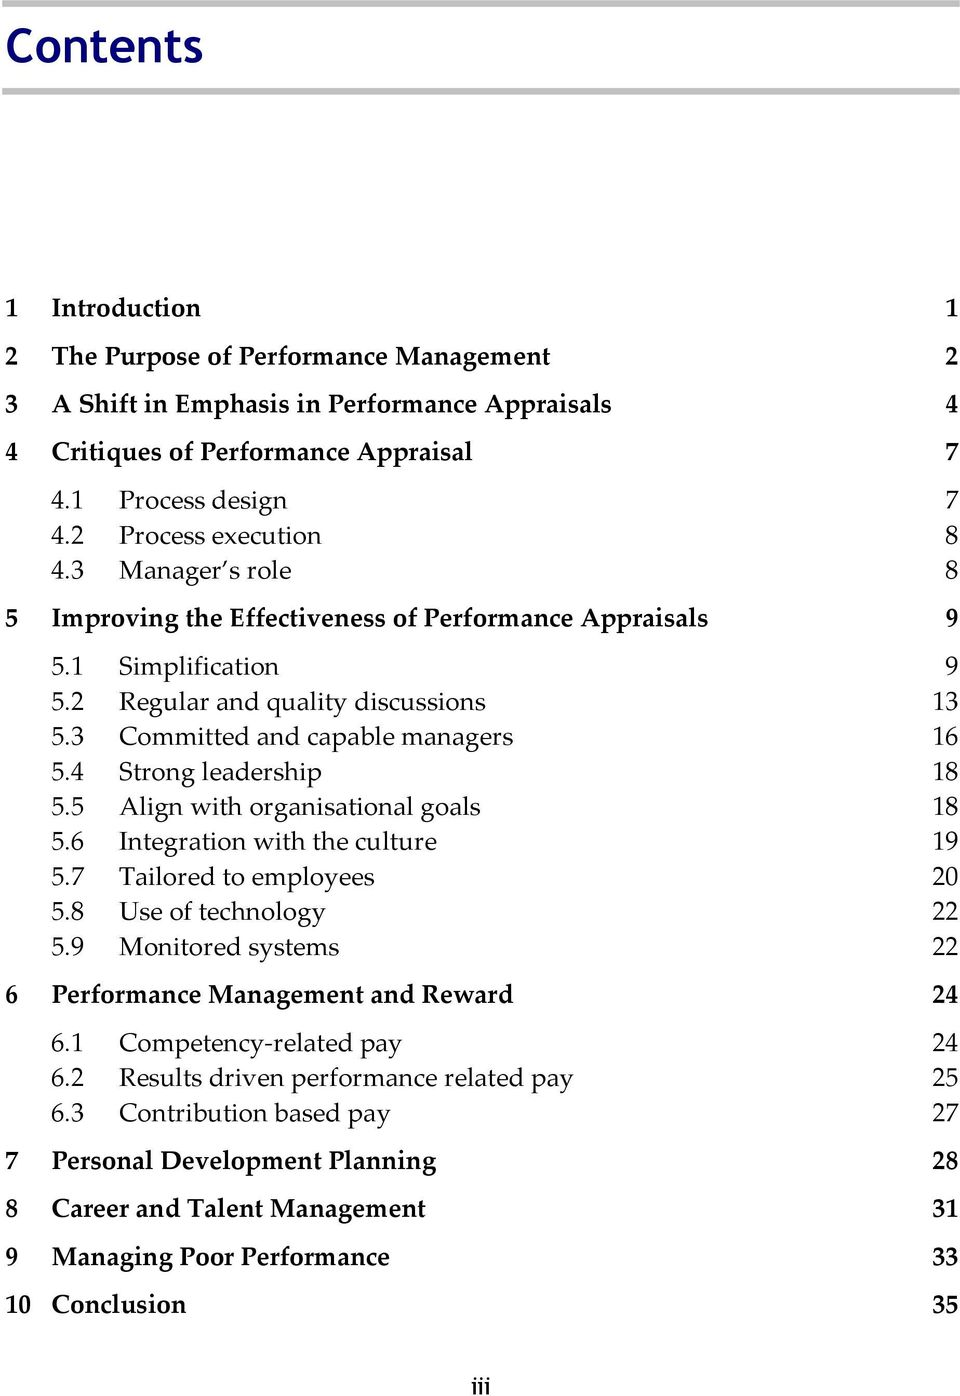 Thesis on performance related pay